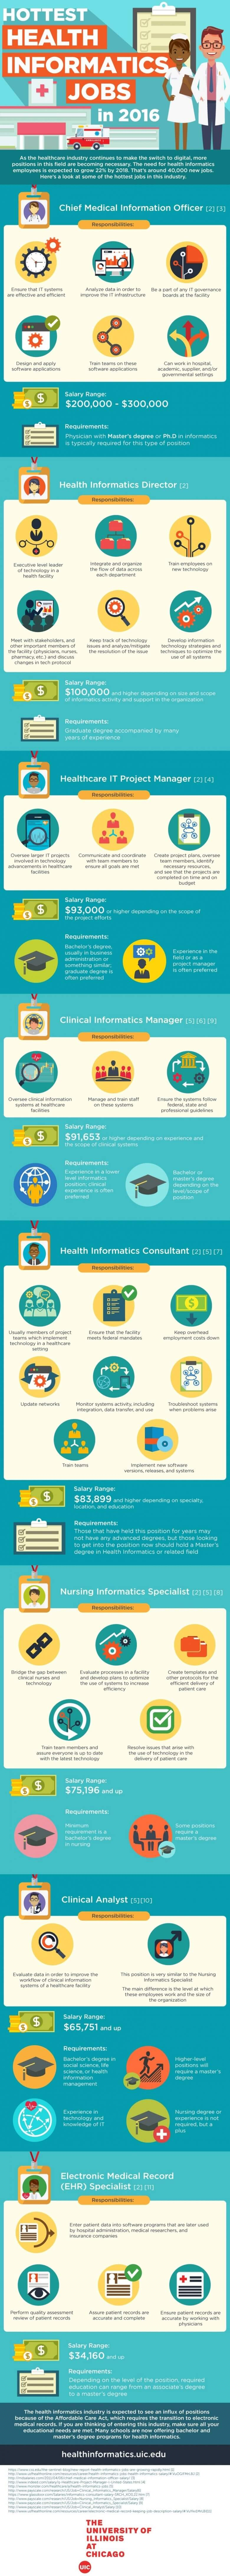 Inforgraph on hottest health informatics jobs